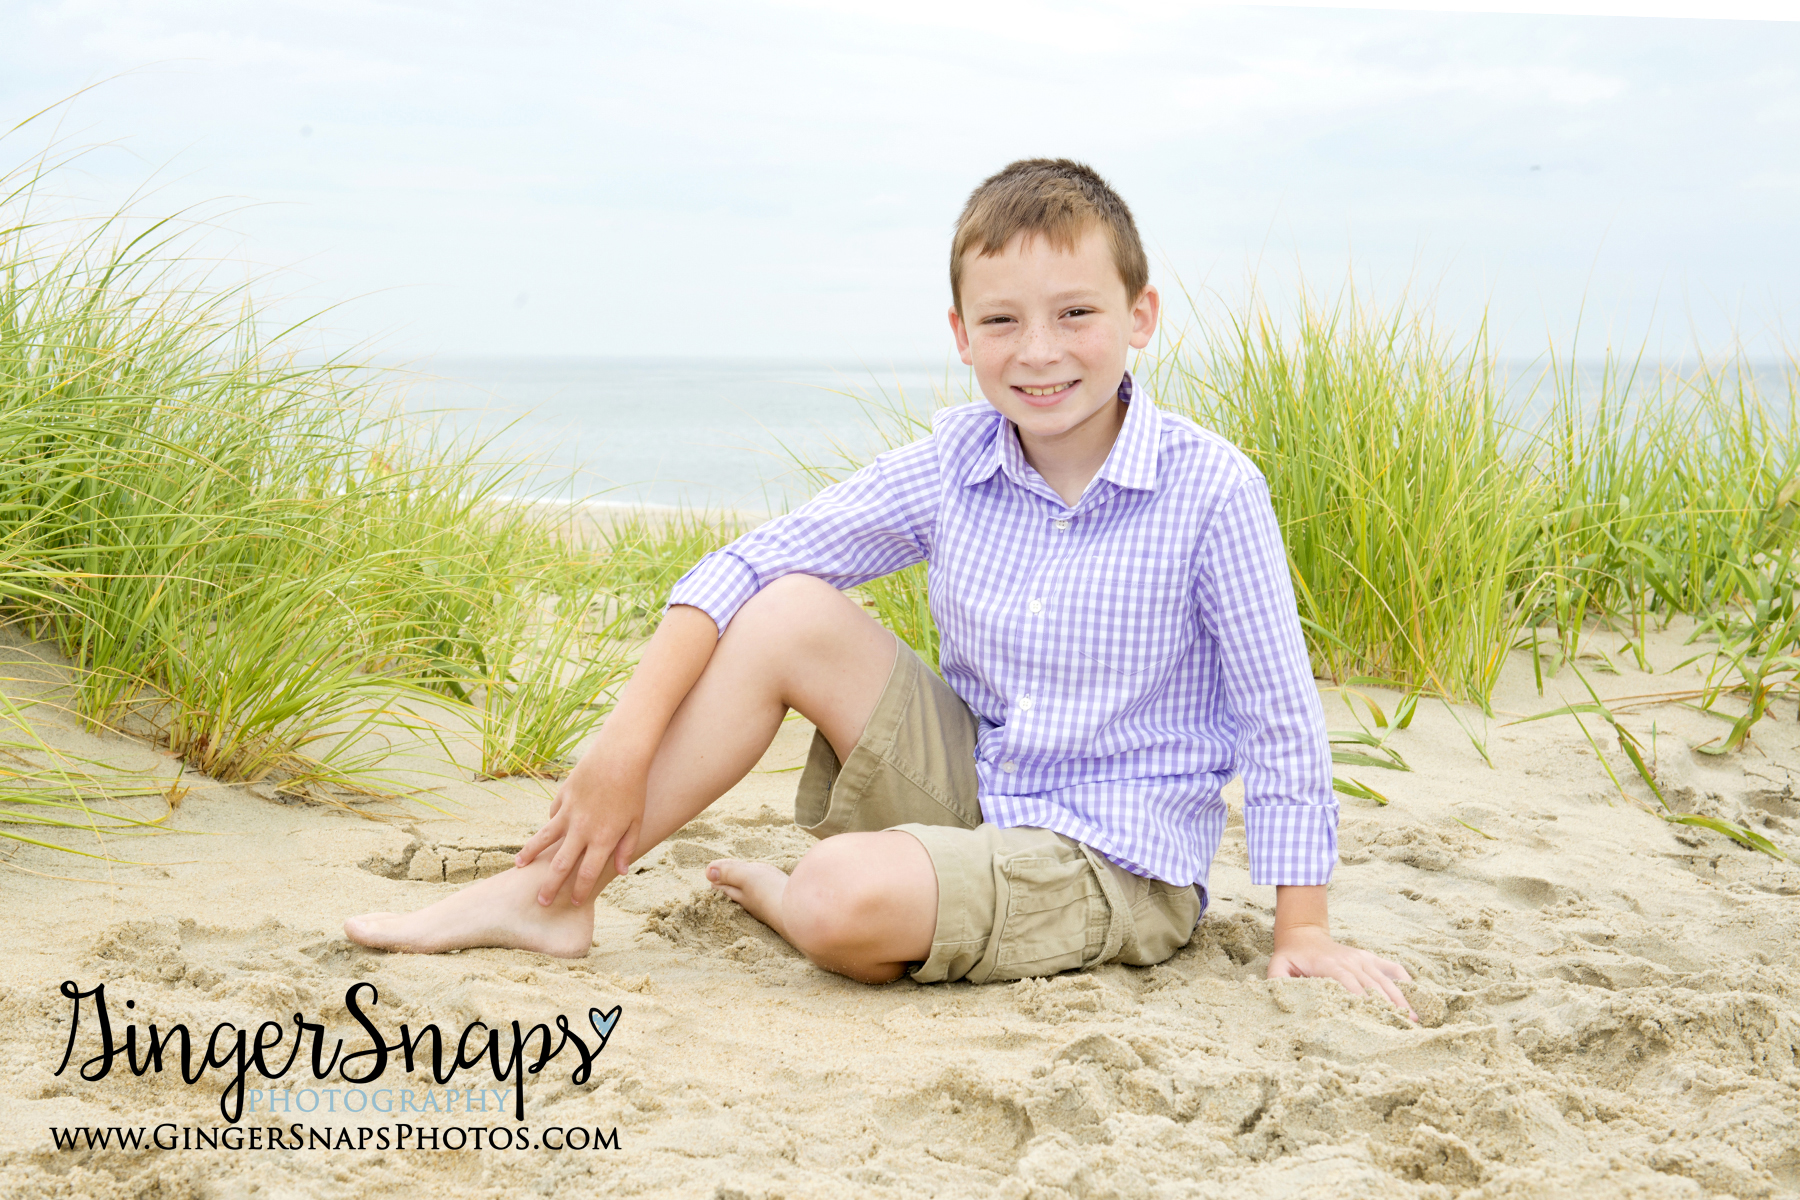 GingerSnaps Photography - 25.jpg